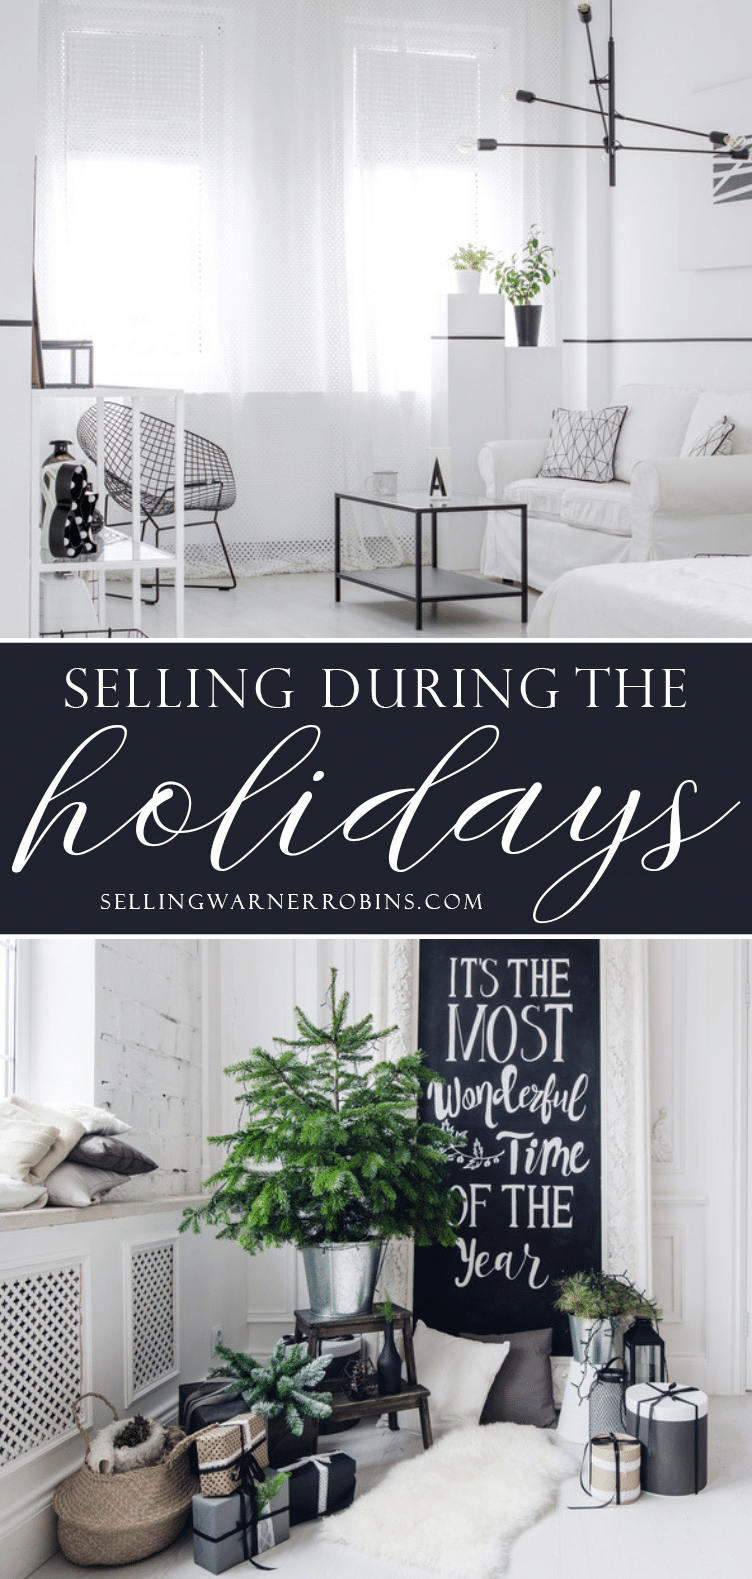 Pros and Cons of Selling During the Holidays